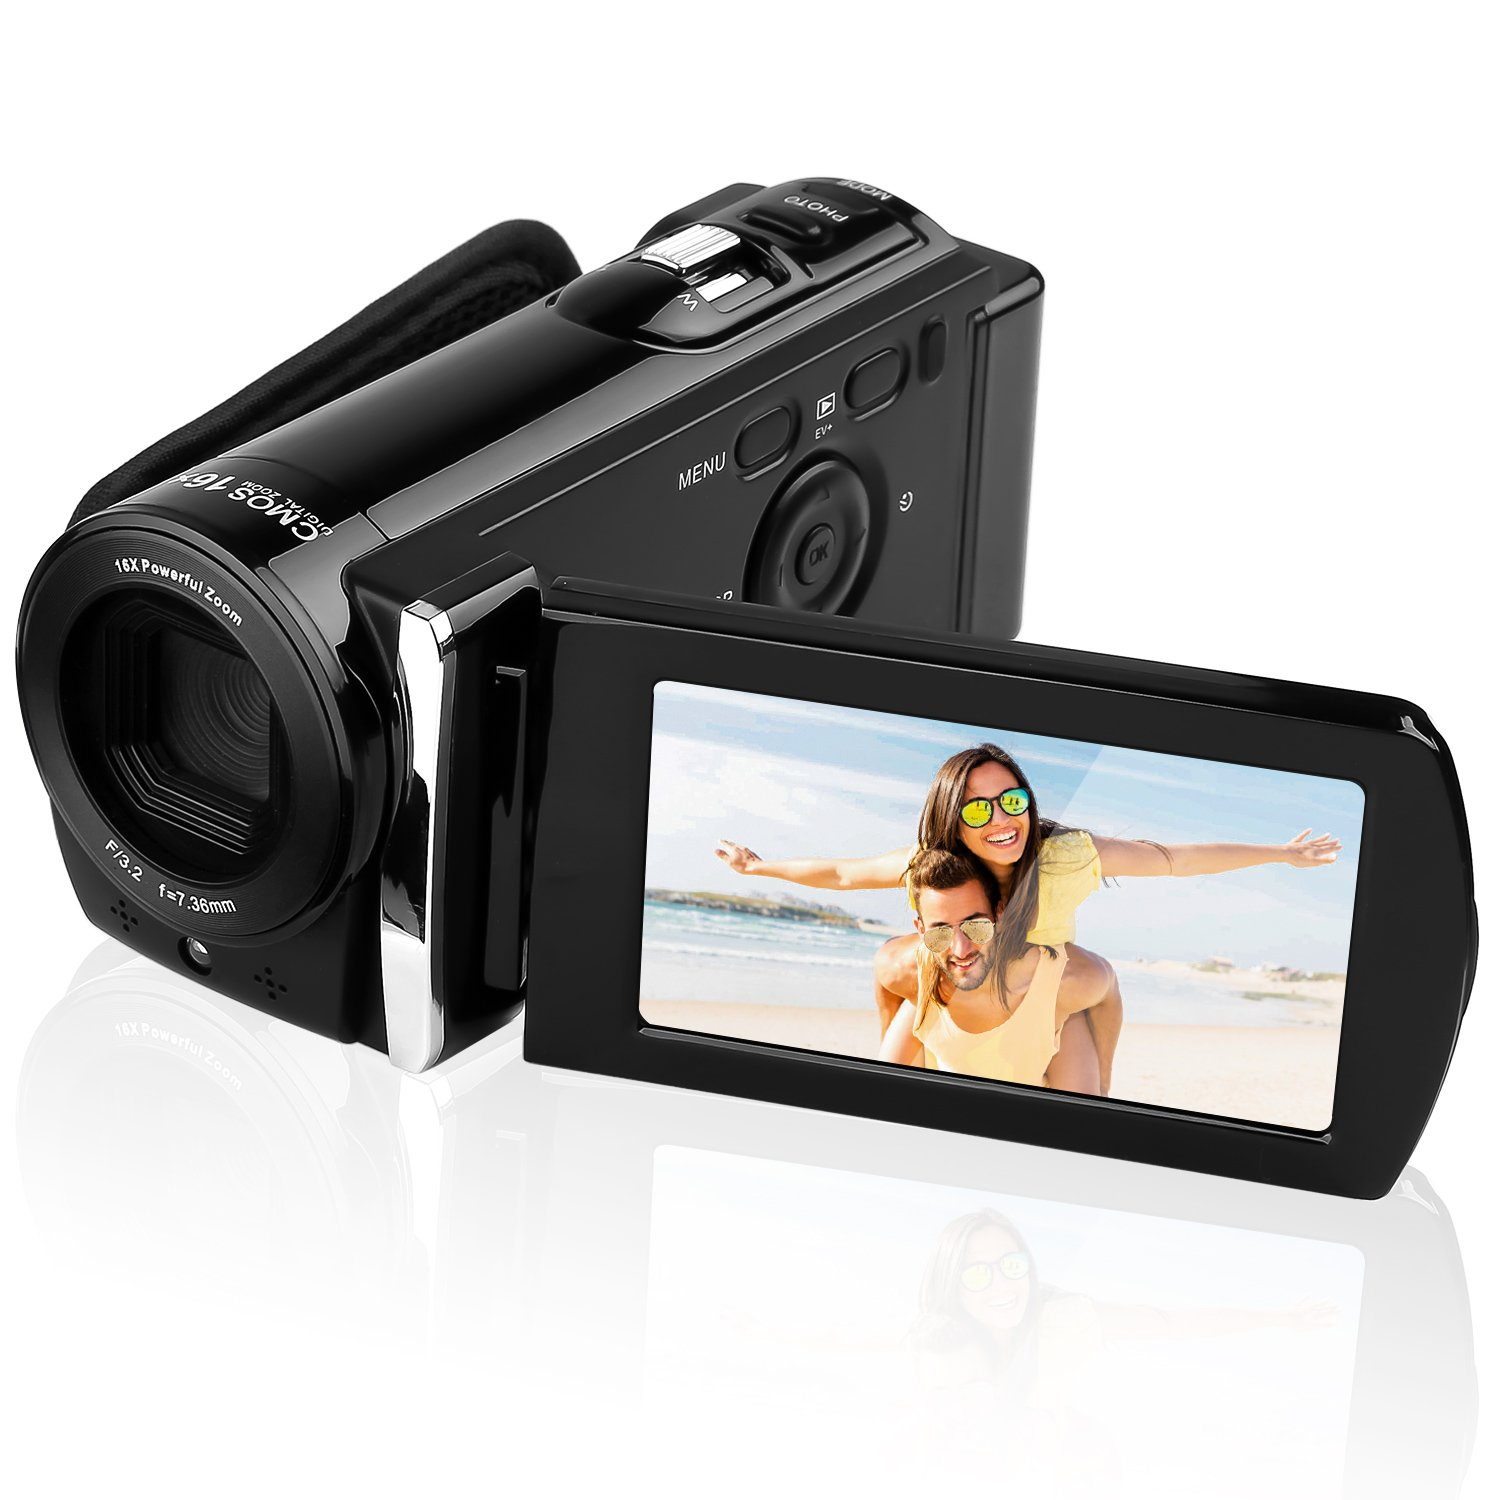 KINGEAR PL014 16MP Digital Camera DV Video Recorder Mini DV Camcorder with 3.0'' Display 16x Digital Zoom